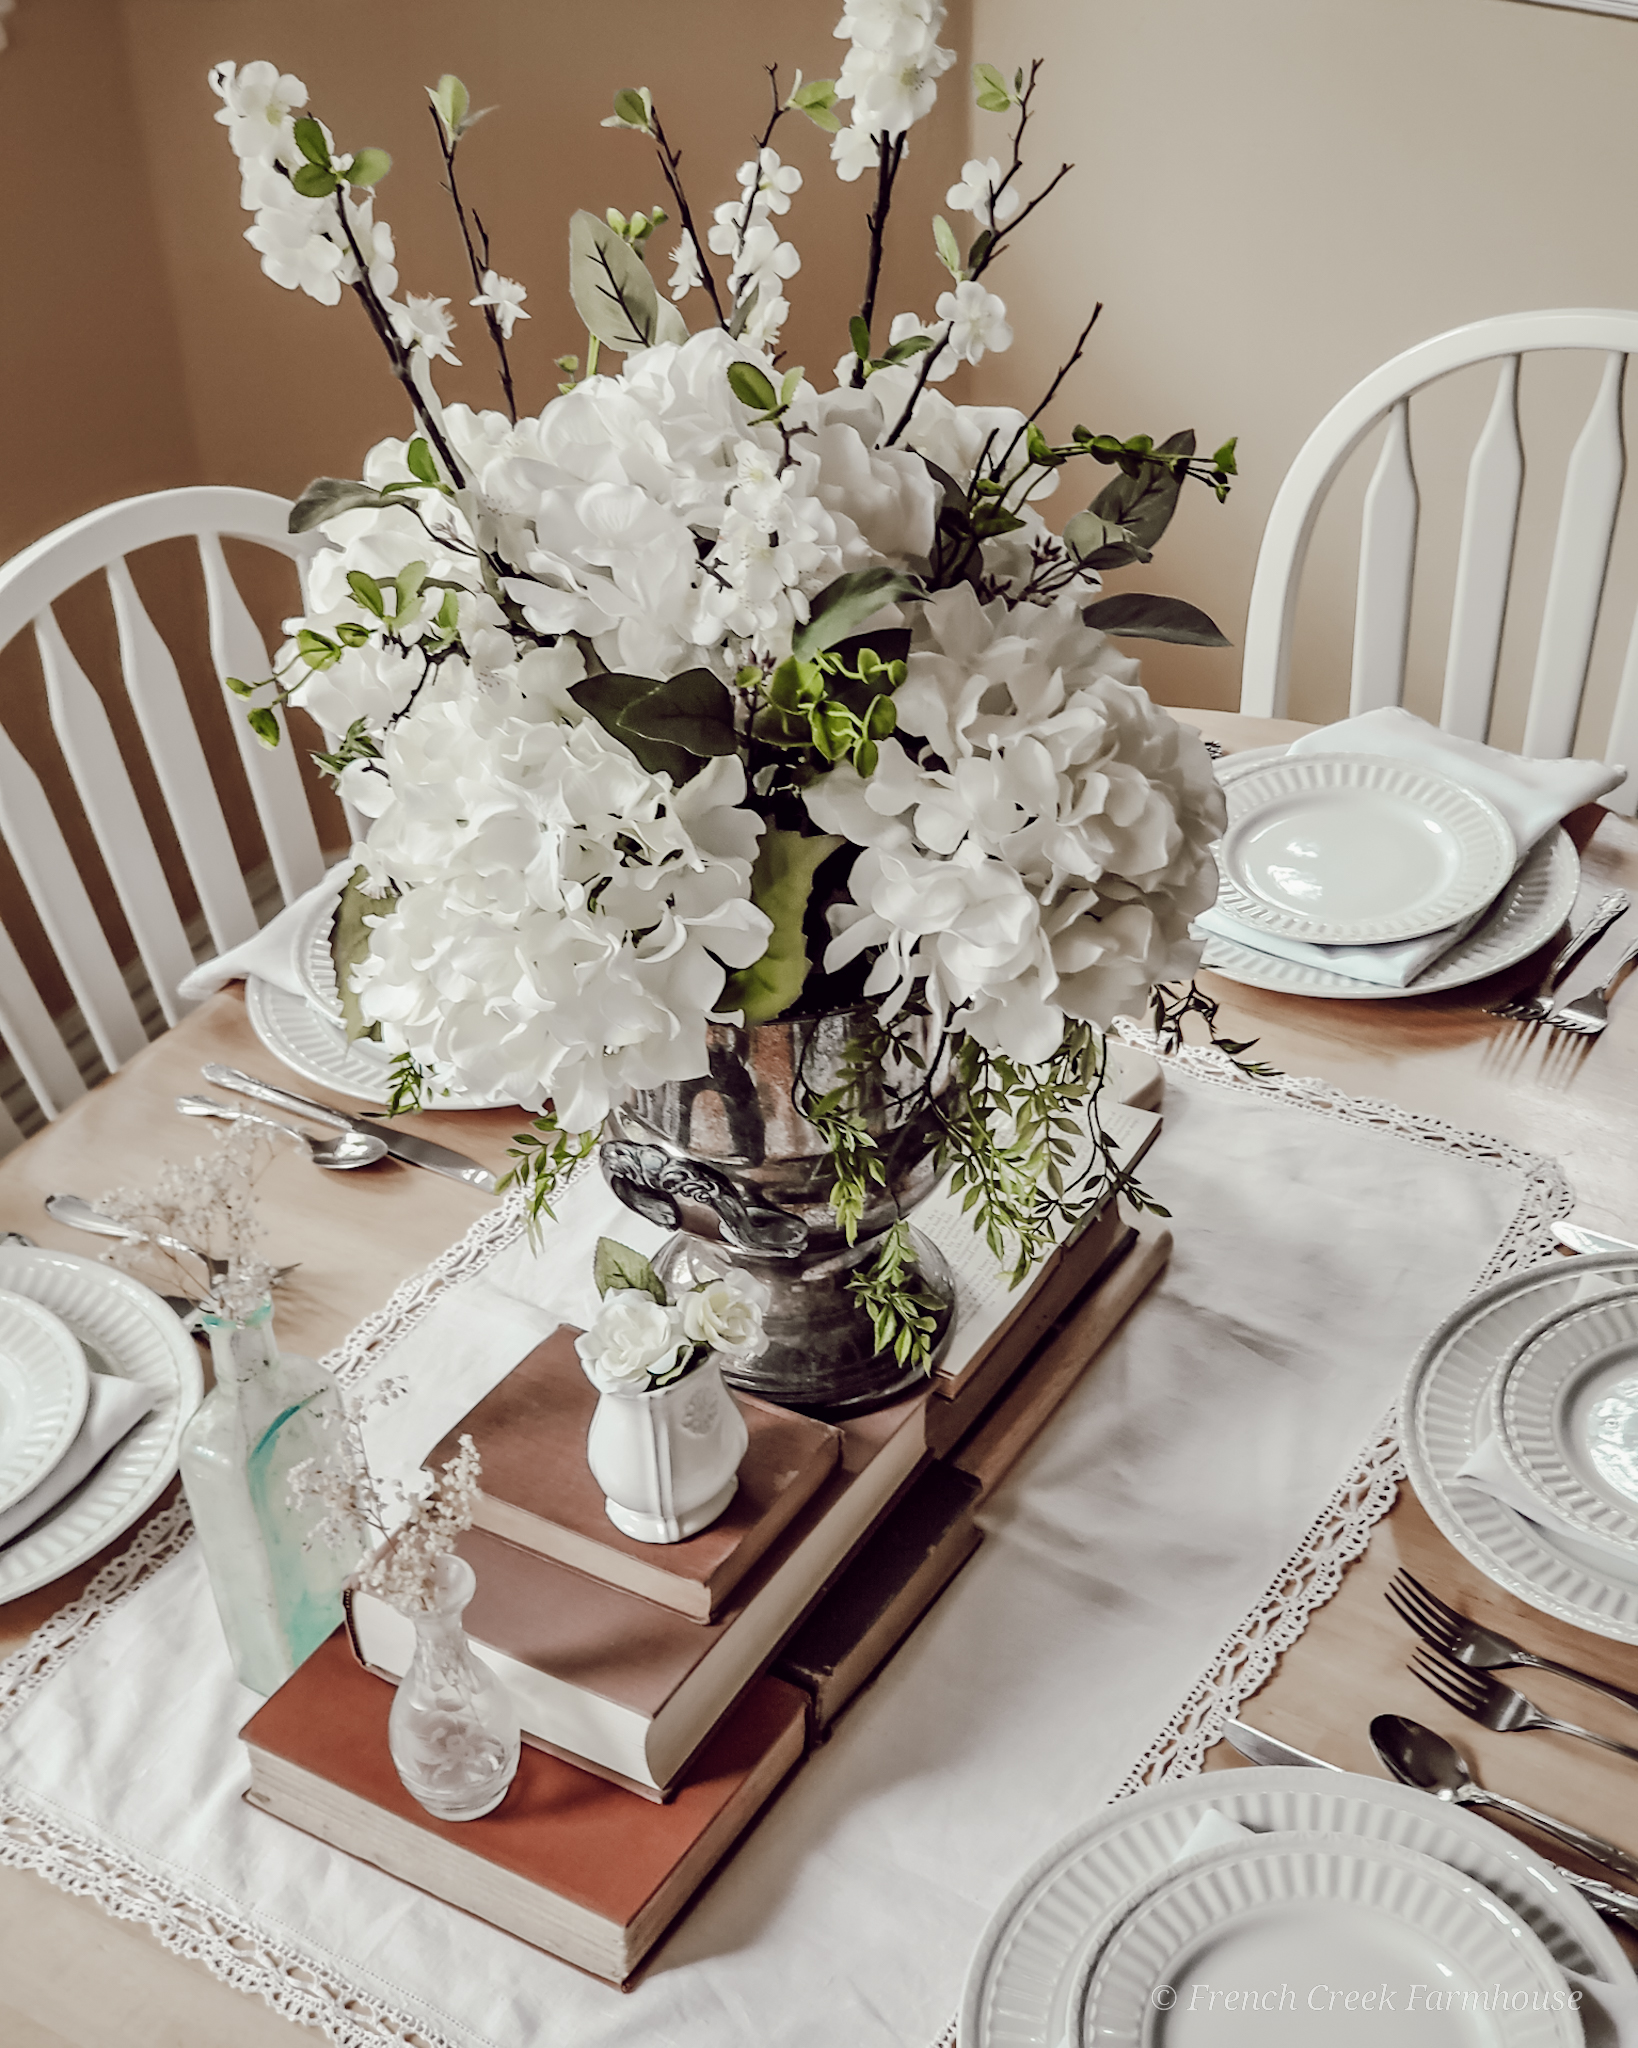 A vintage centerpiece with old books